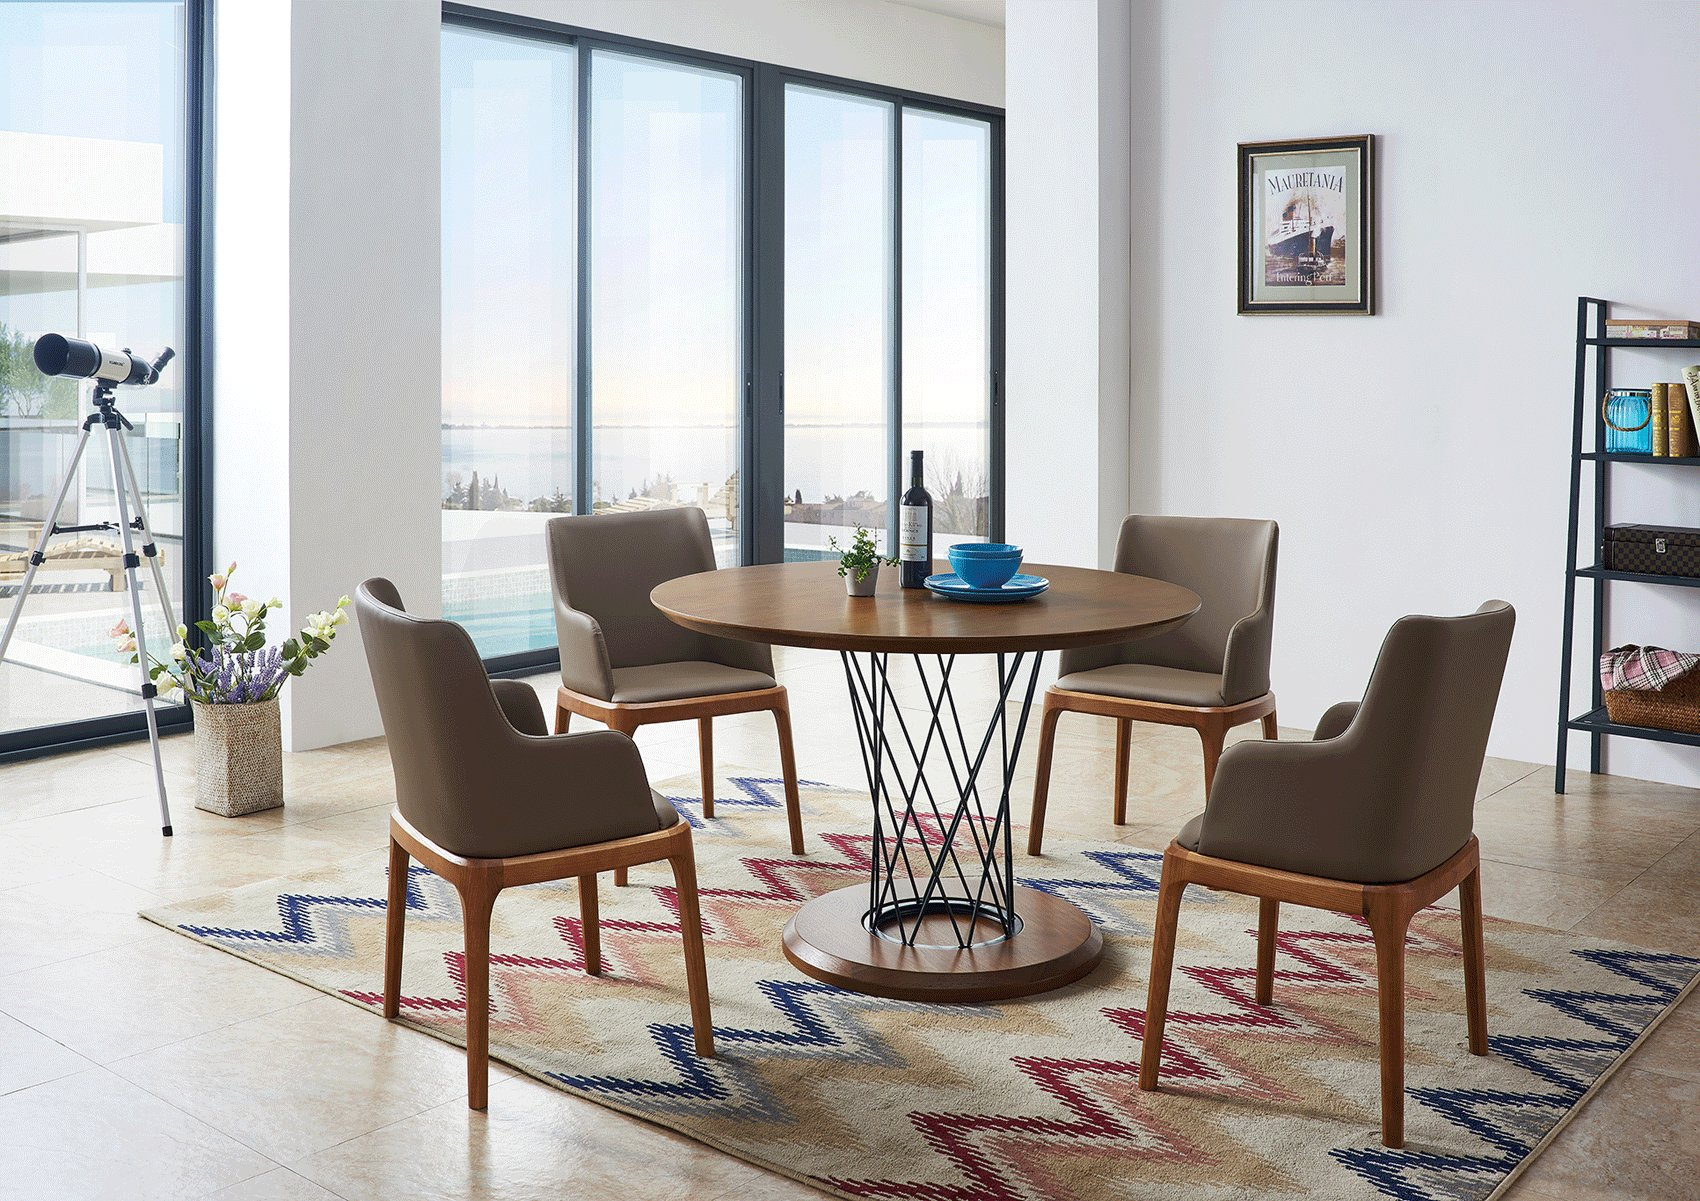 Dining sets with chairs contemporary